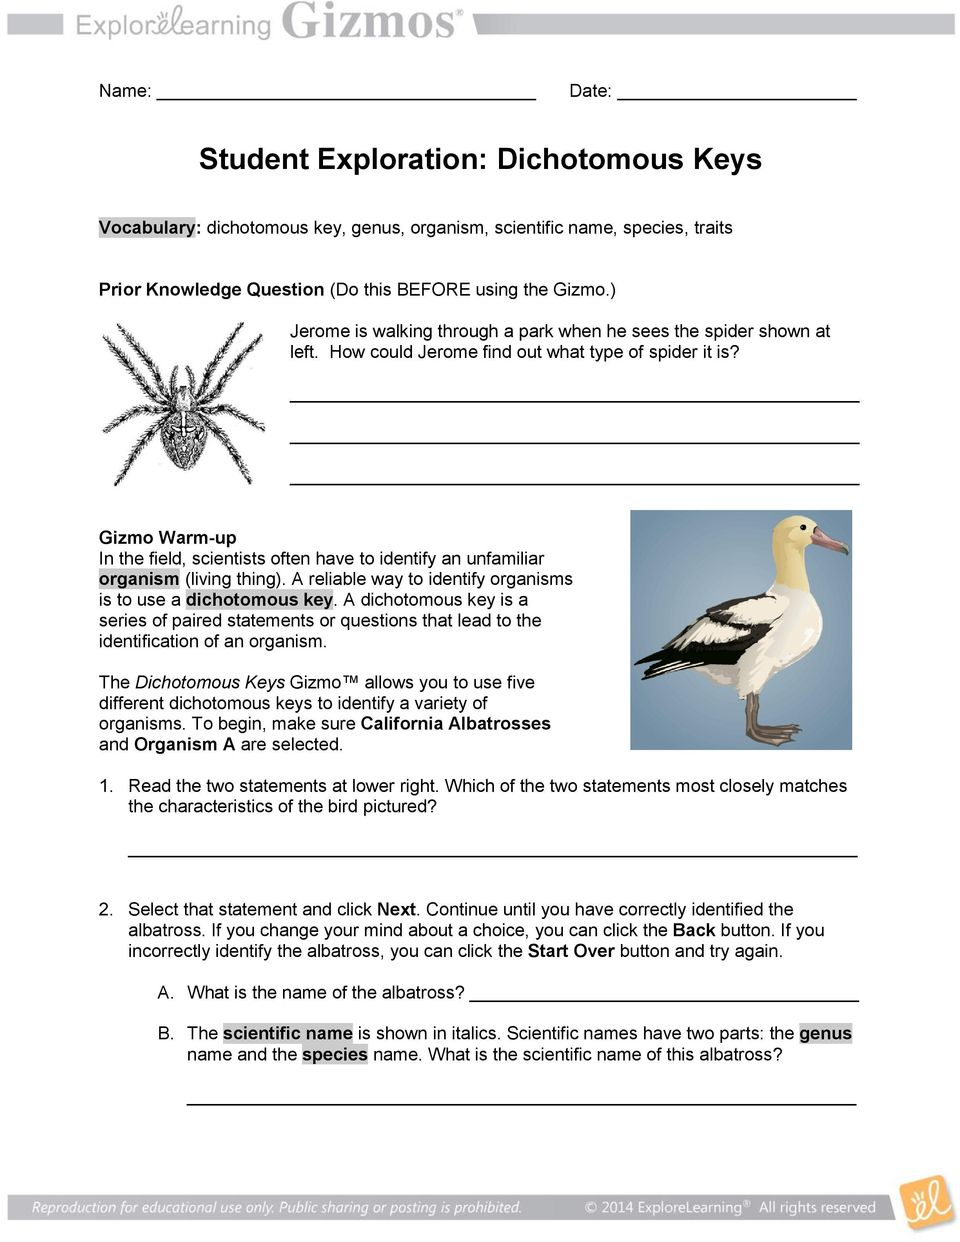 Student Exploration: Dichotomous Keys - PDF